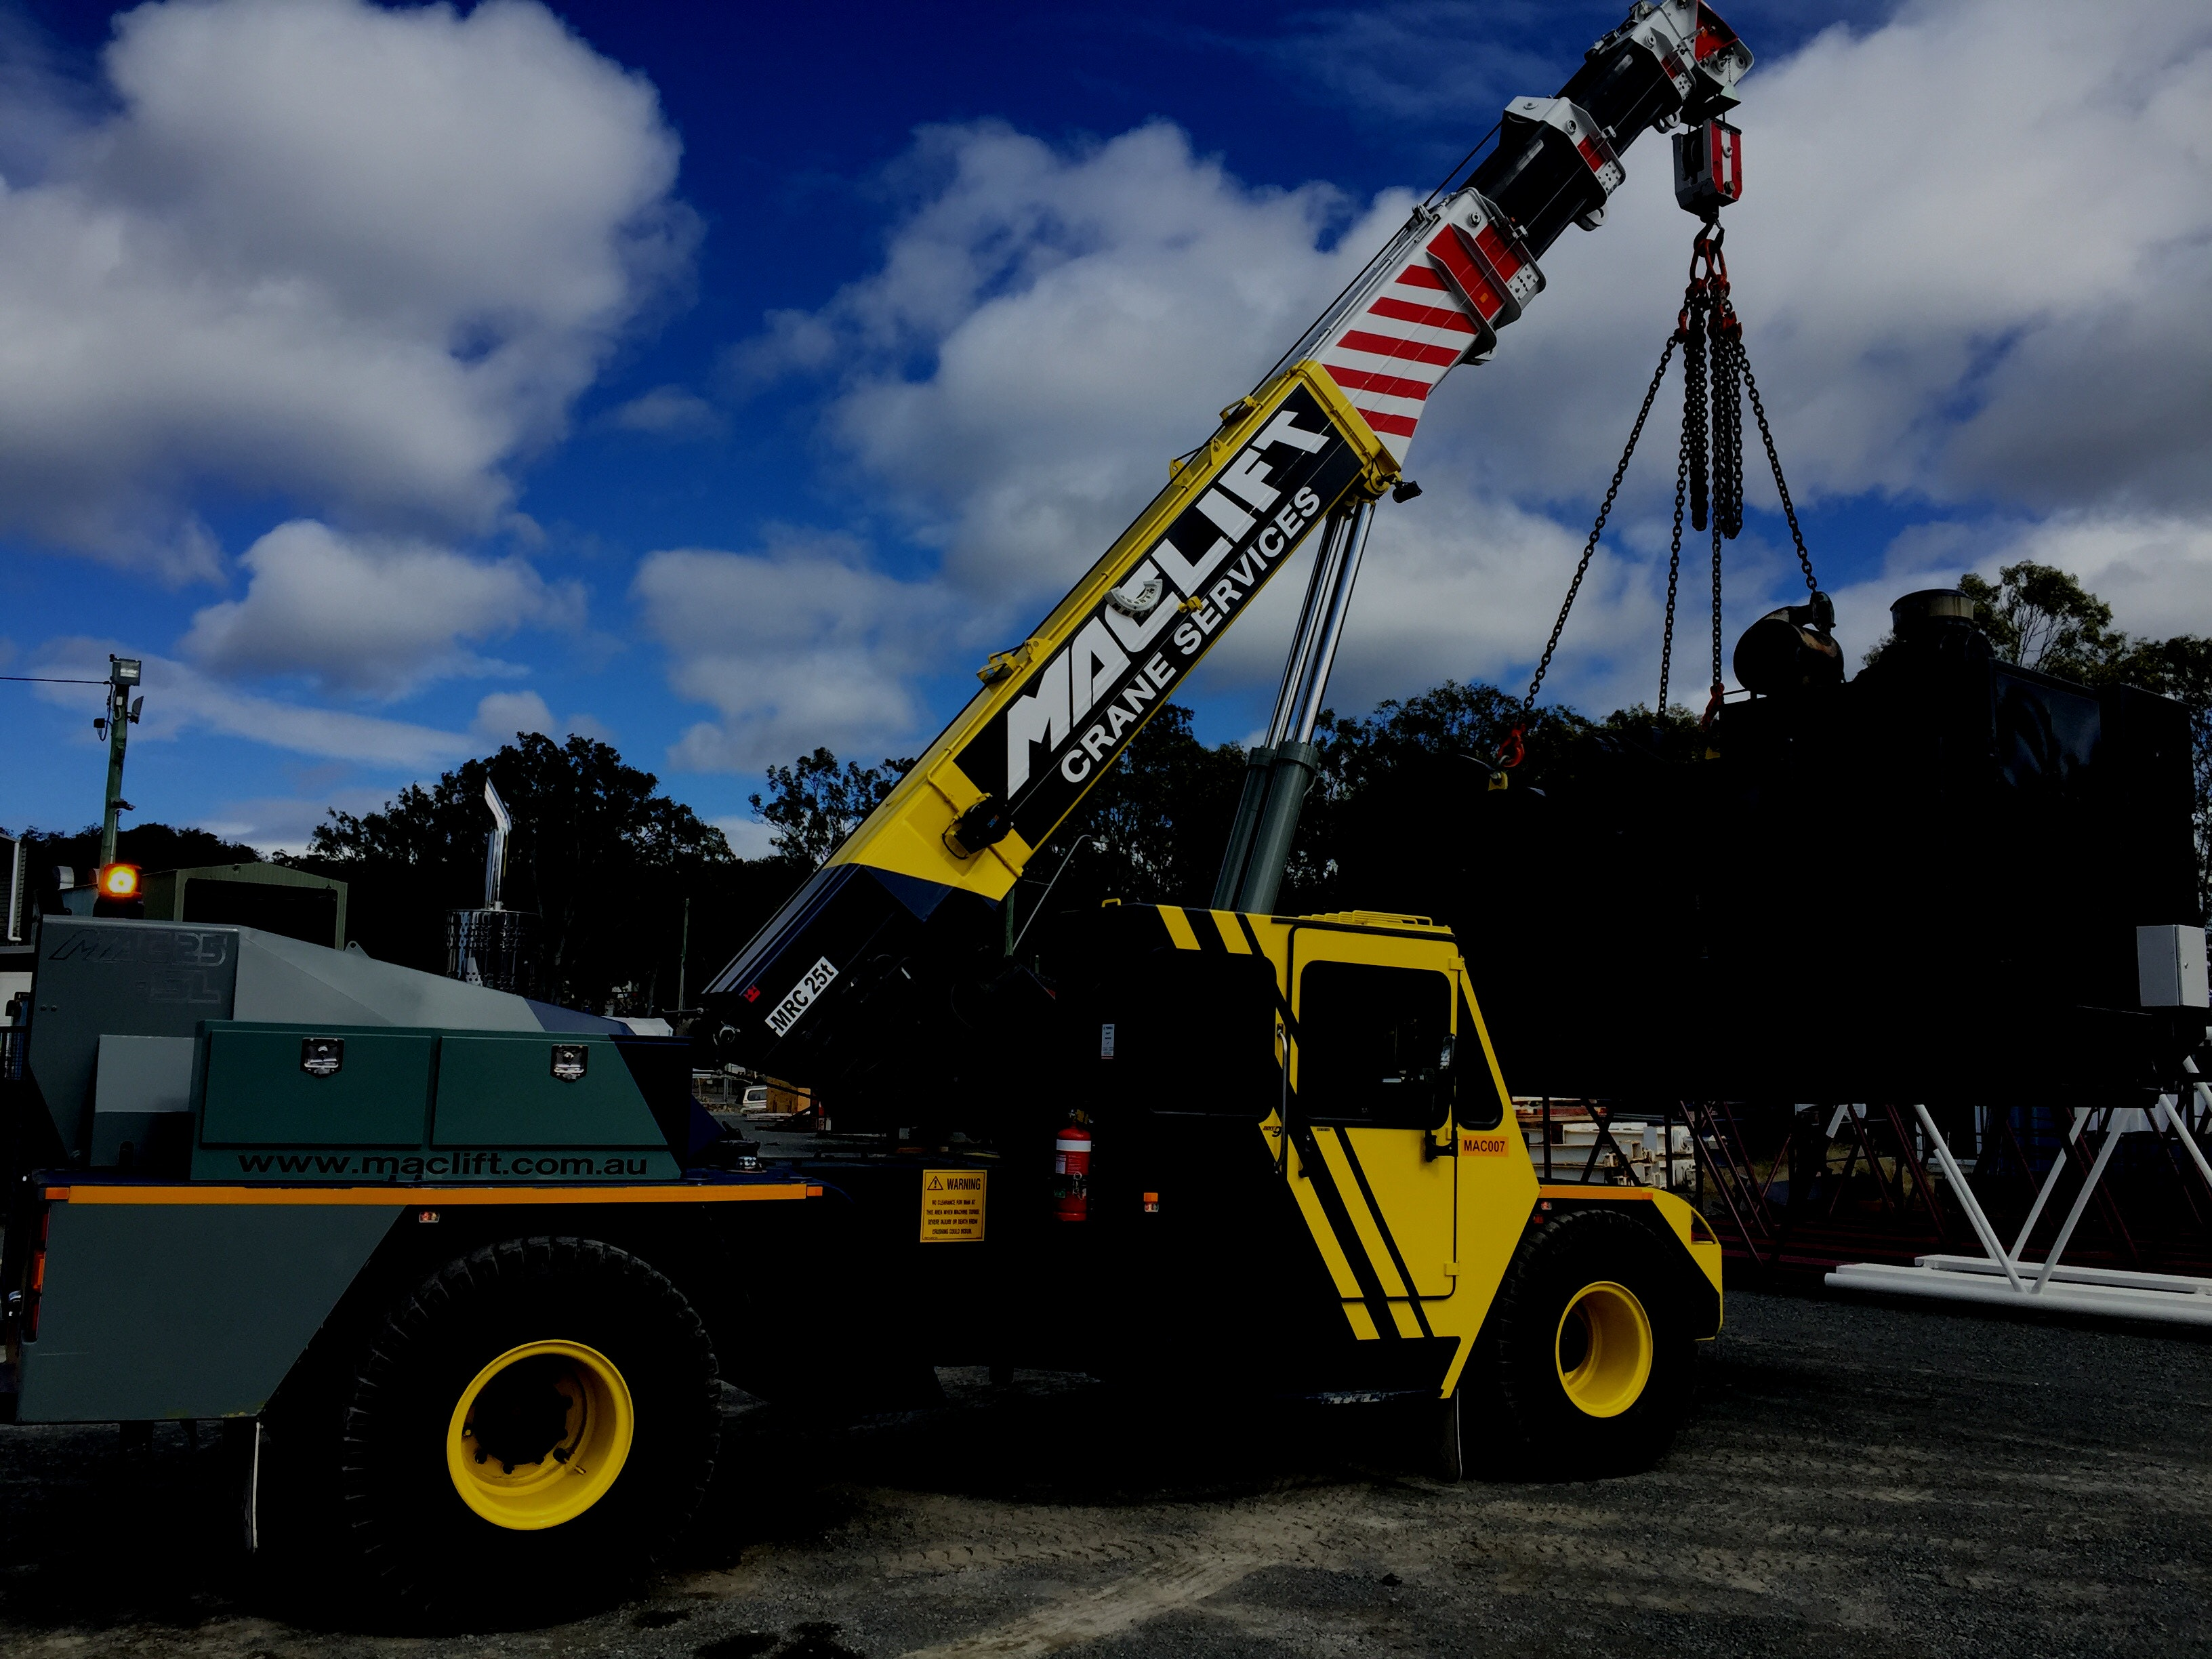 21t - 50t SWL Cranes for hire - Consolidated Mining and Civil